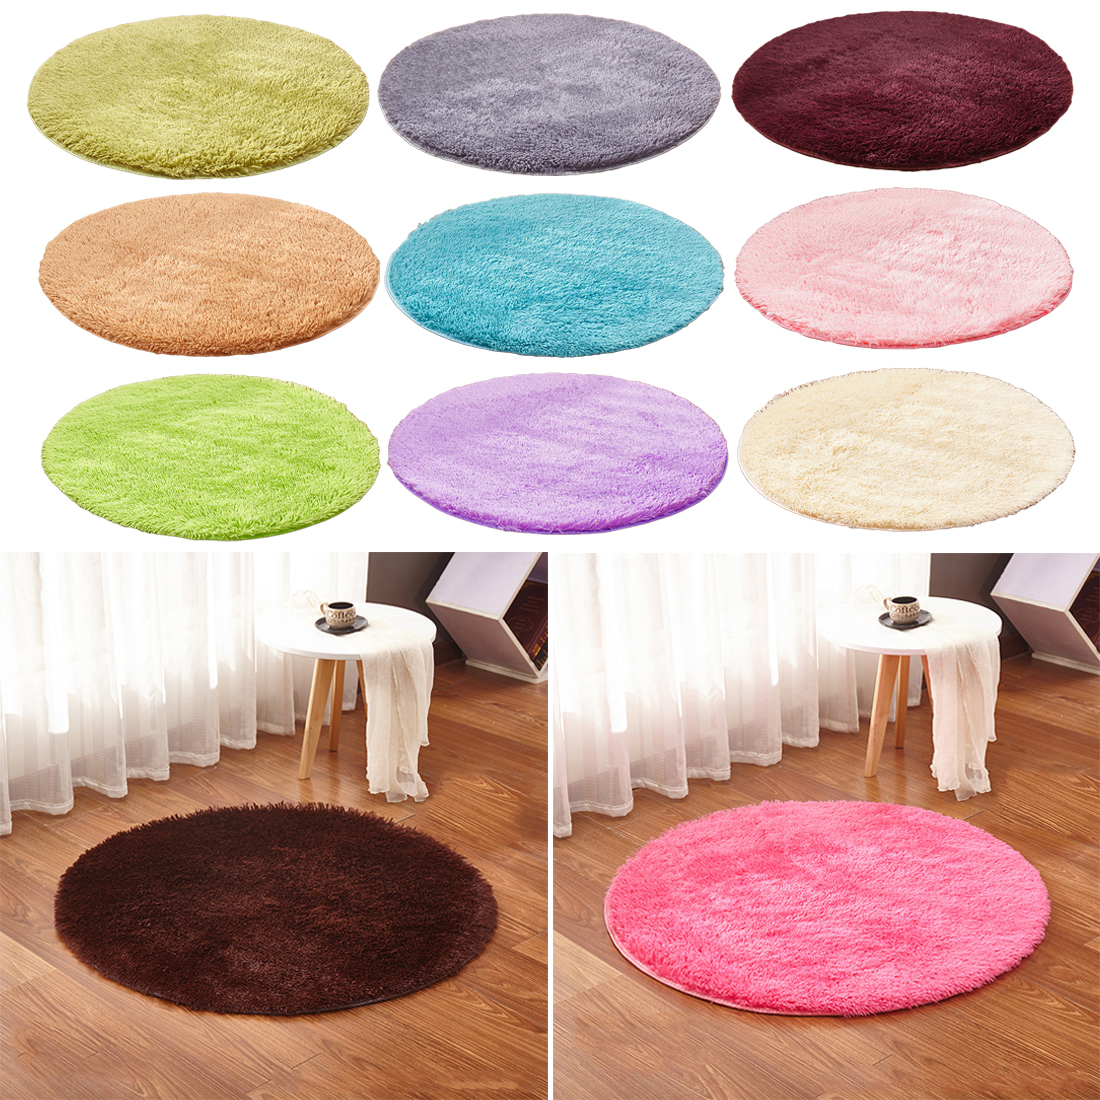 Fluffy Round Rug Carpet For Living Room Kilim Faux Fur Carpet Kids Room Long Plush Rugs For Bedroom Shaggy Area Rug 15 Colors